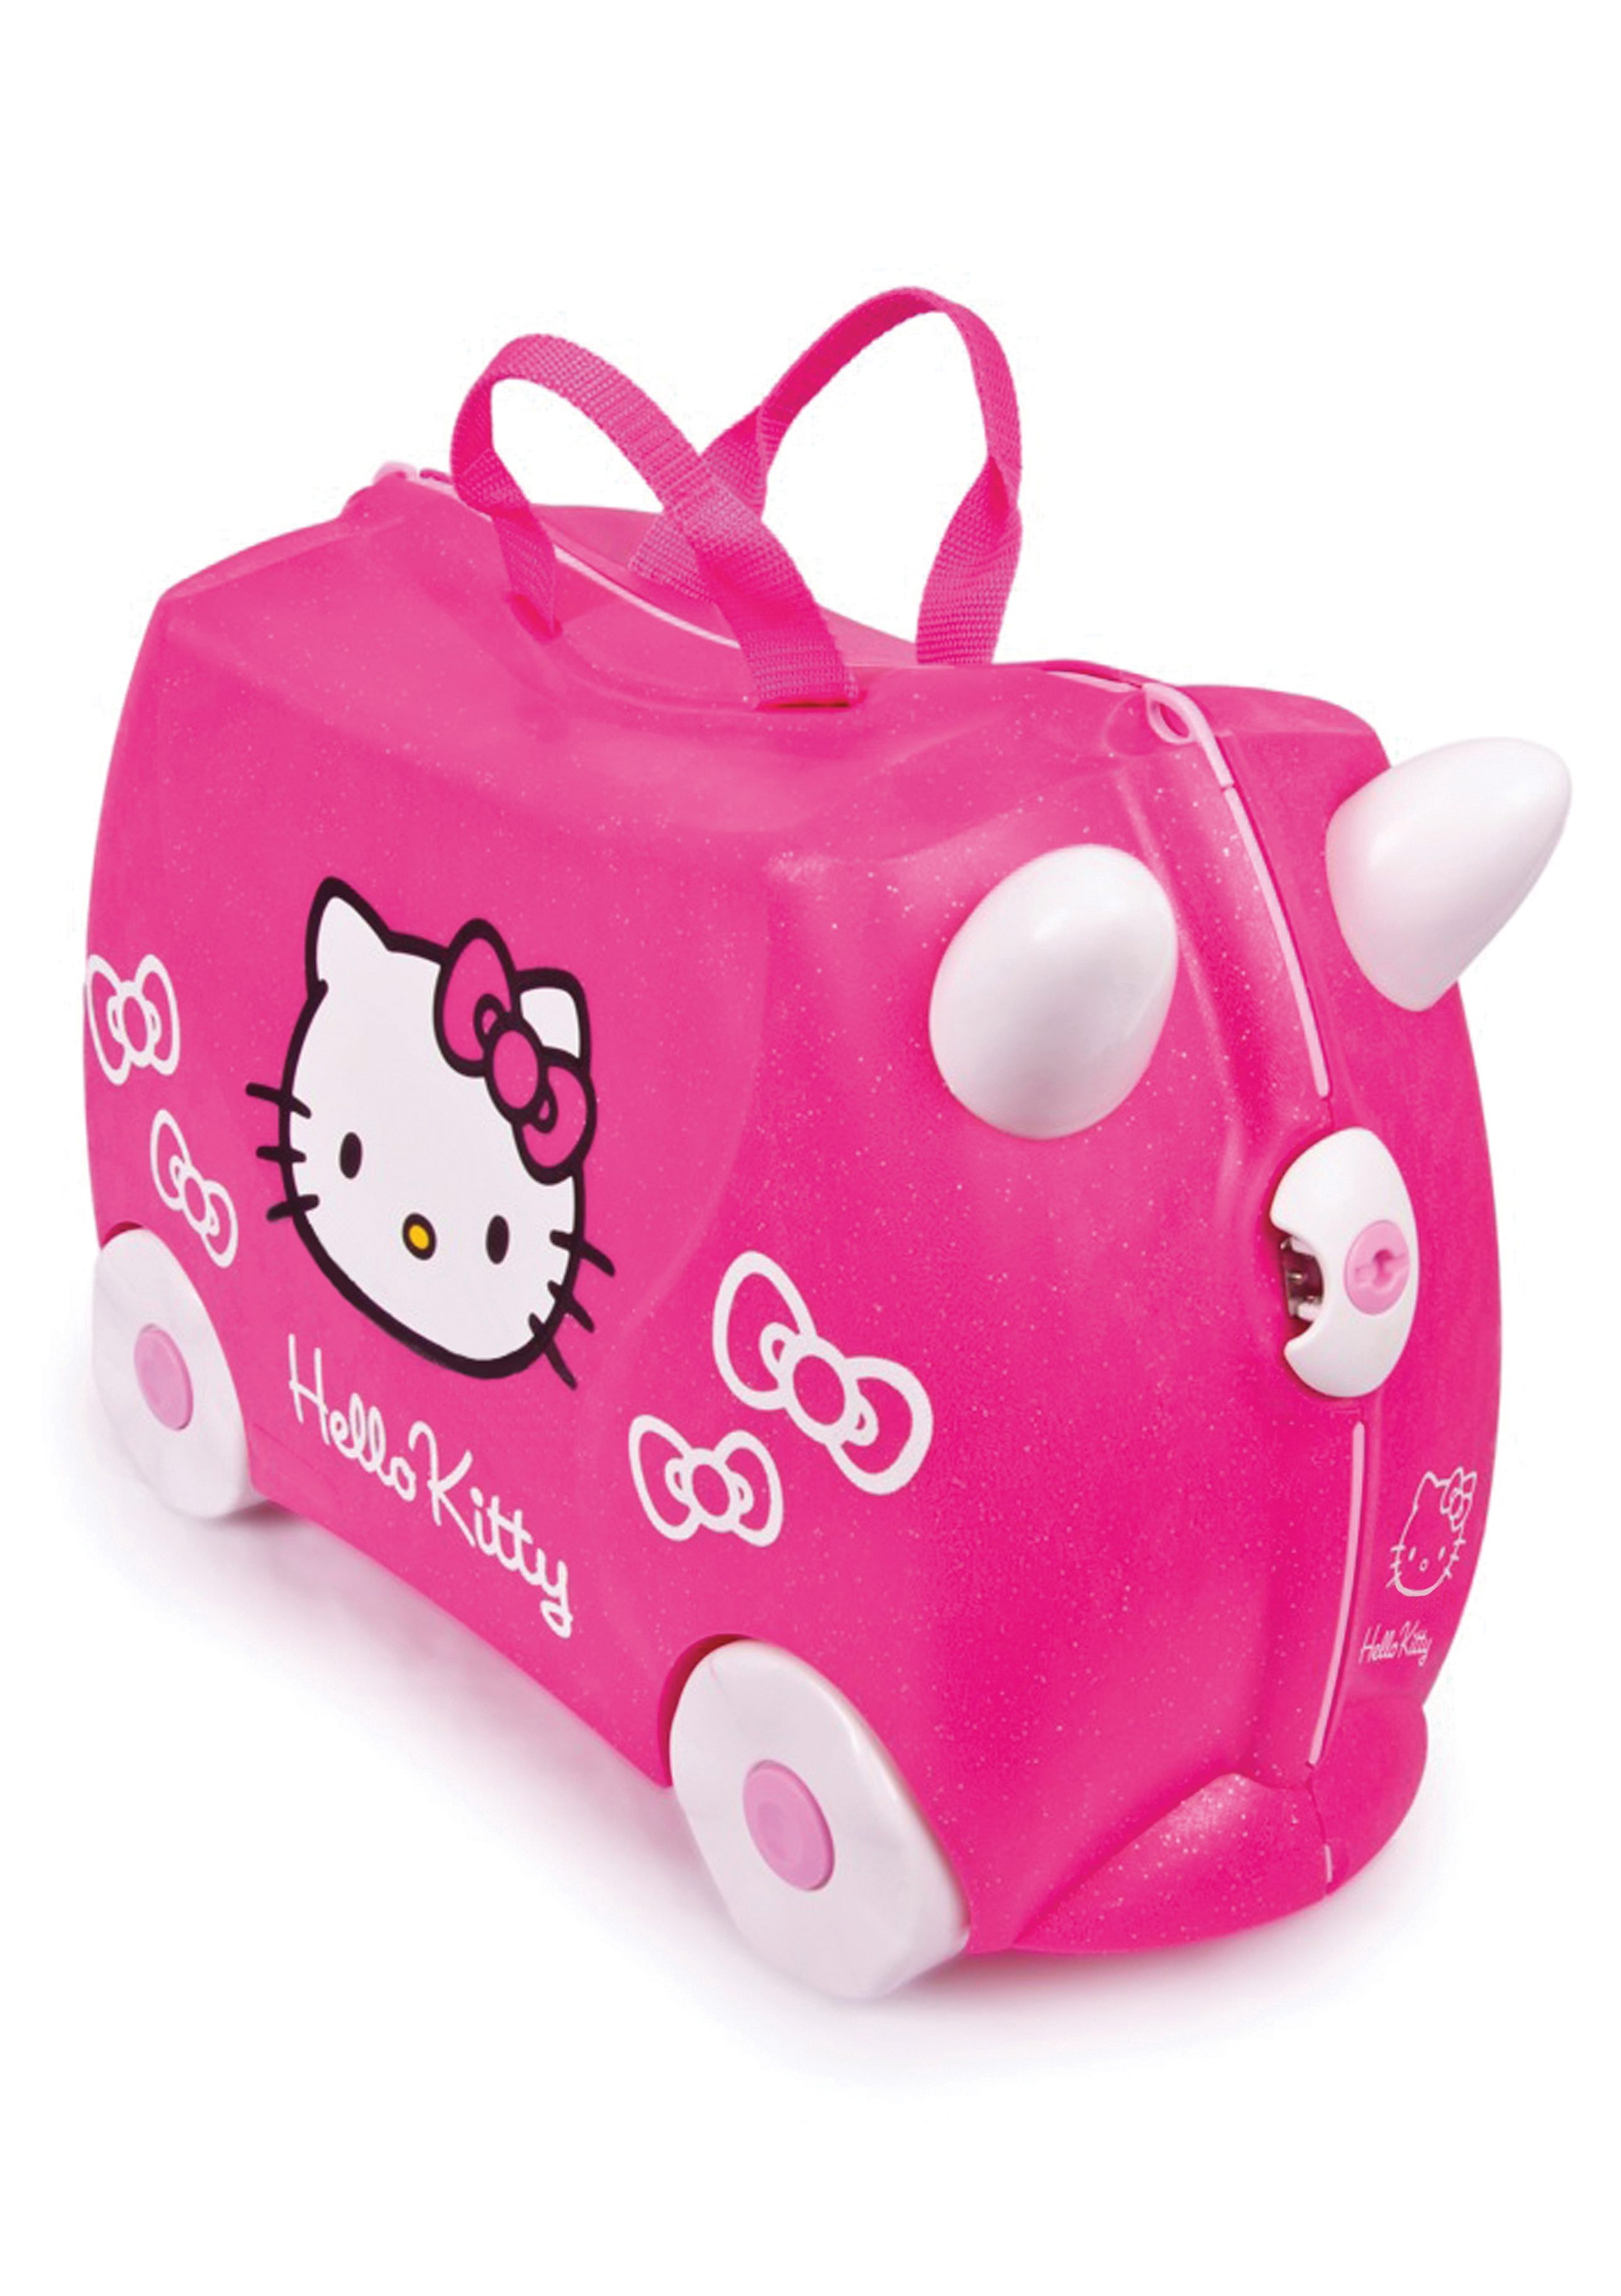 Kinderkoffer, »Trunki Hello Kitty«, knorr toys